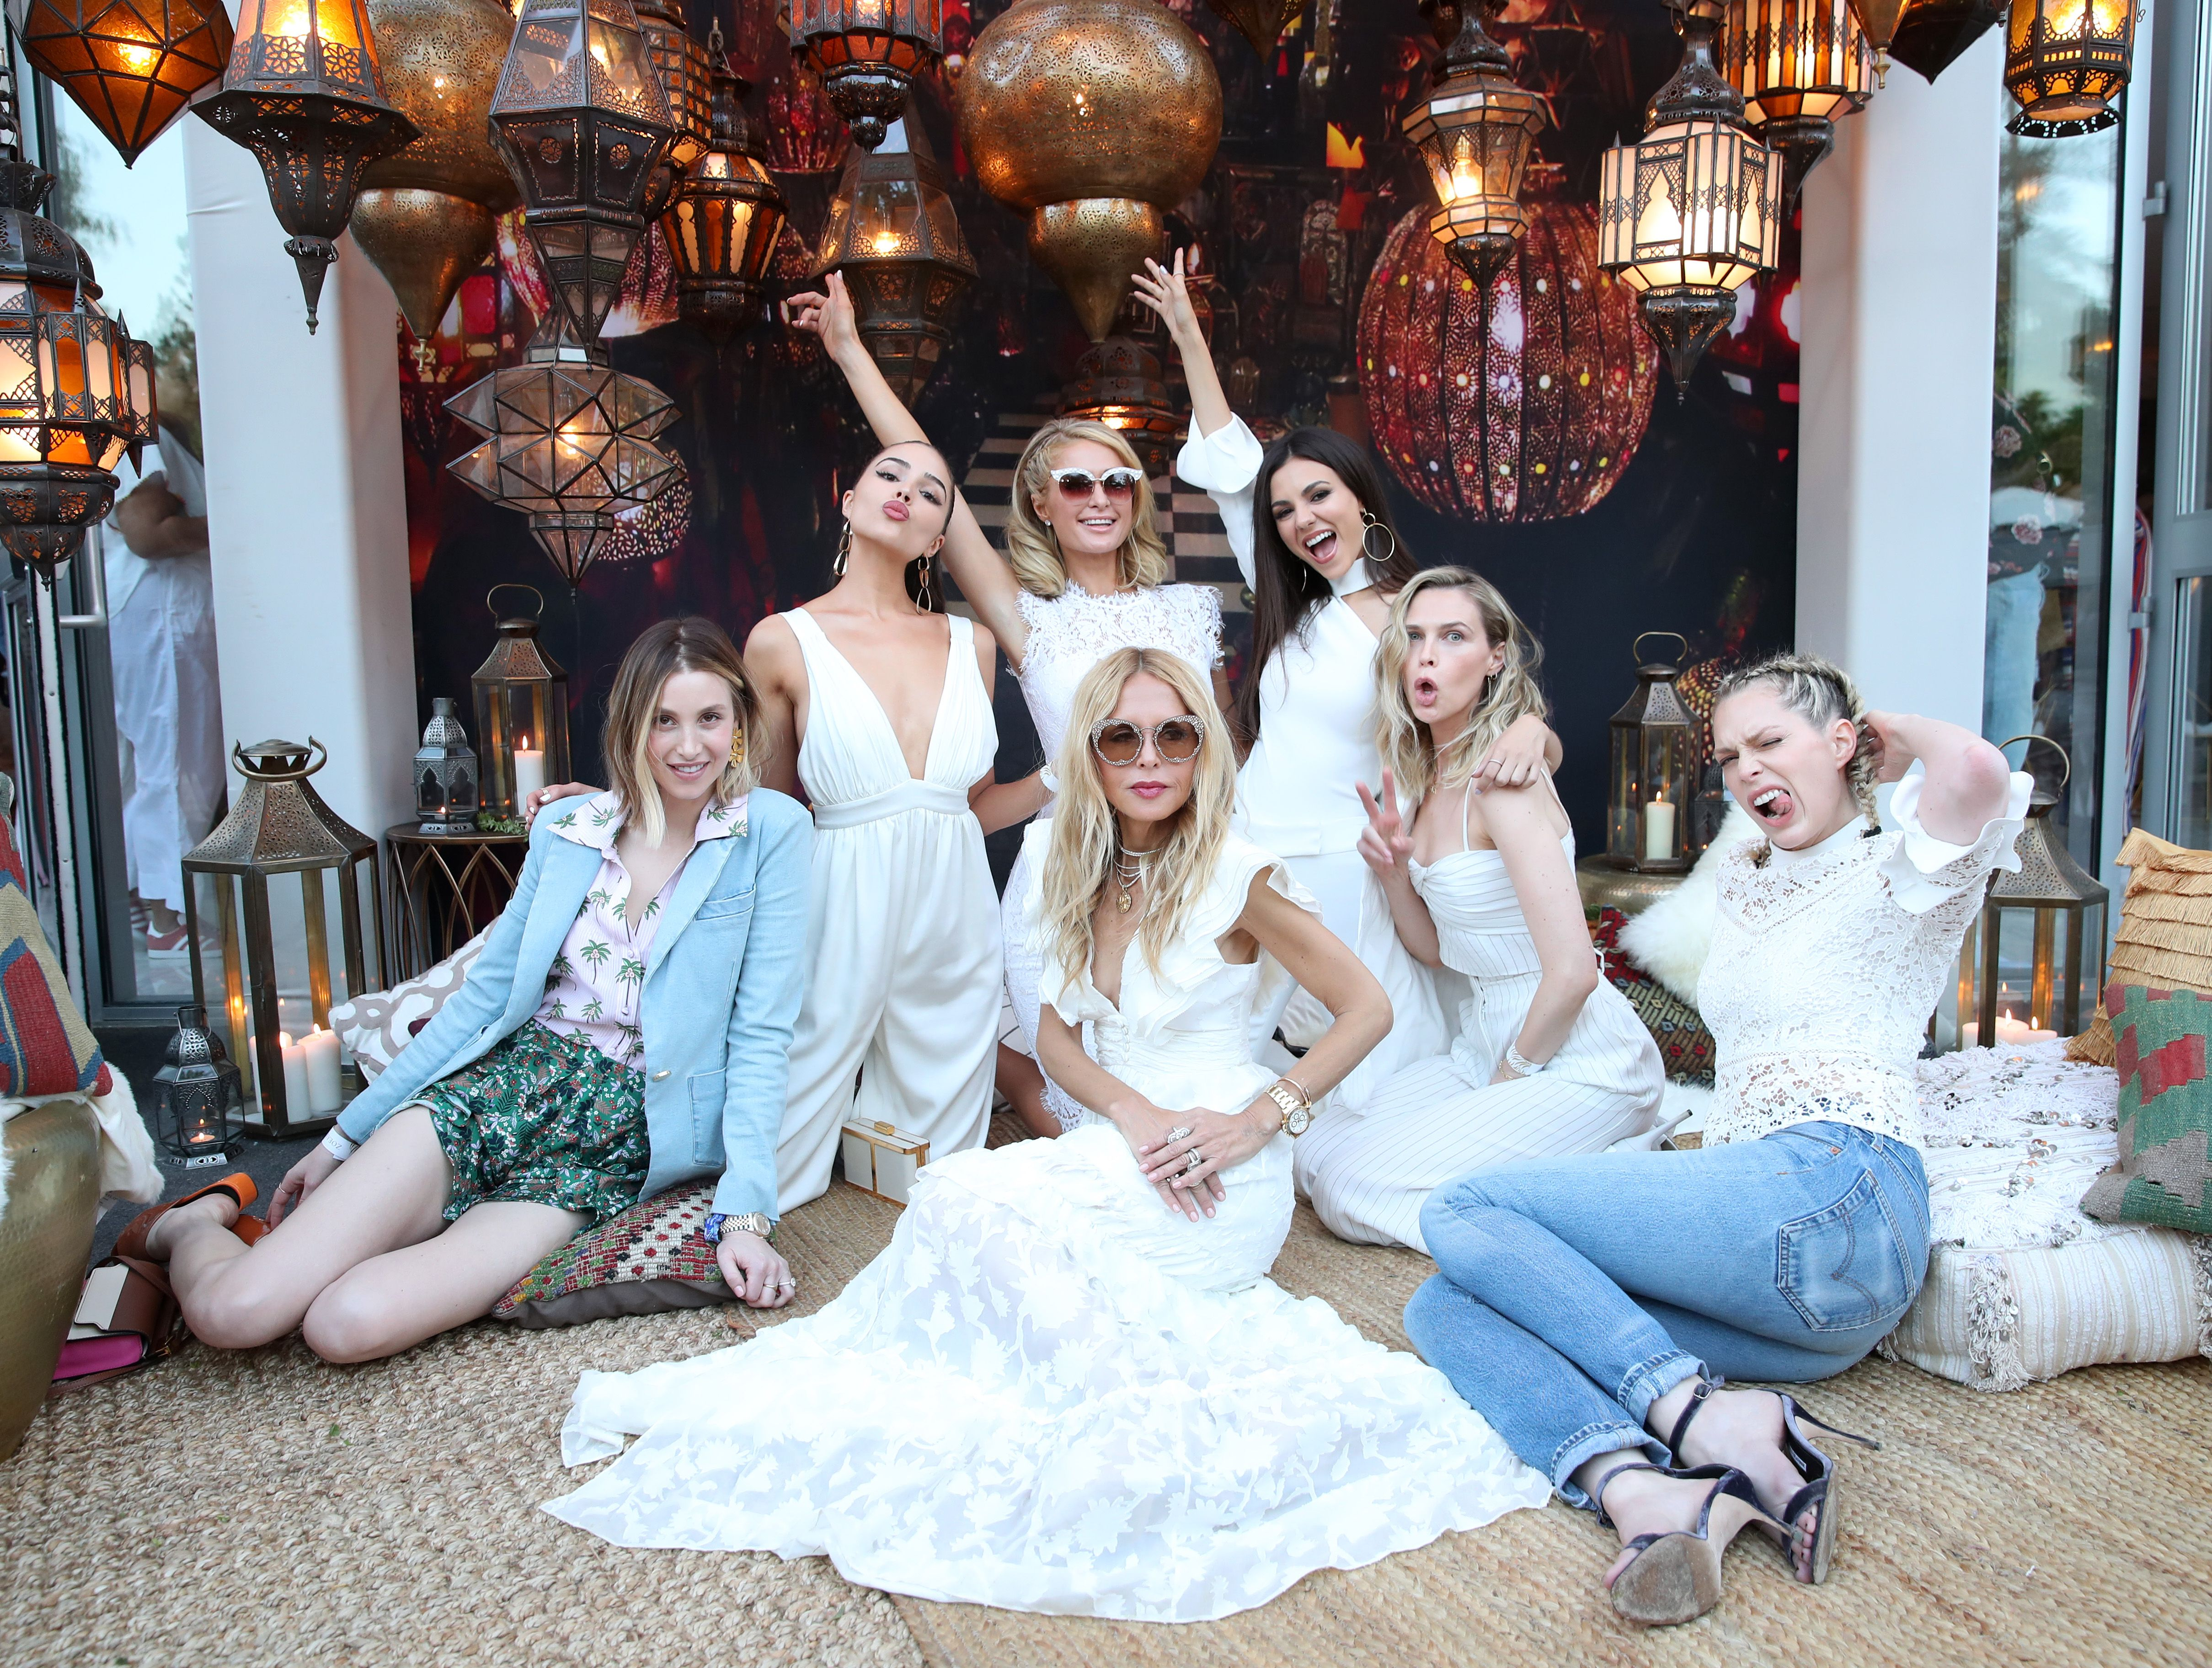 Whitney Port, Olivia Culpo, Paris Hilton, Victoria Justice, Rachel Zoe, Sara Foster and Erin FosterThe Zoe Report's 4th Annual ZOEasis, Coachella Valley Music and Arts Festival, Palm Springs, USA - 13 Apr 2018